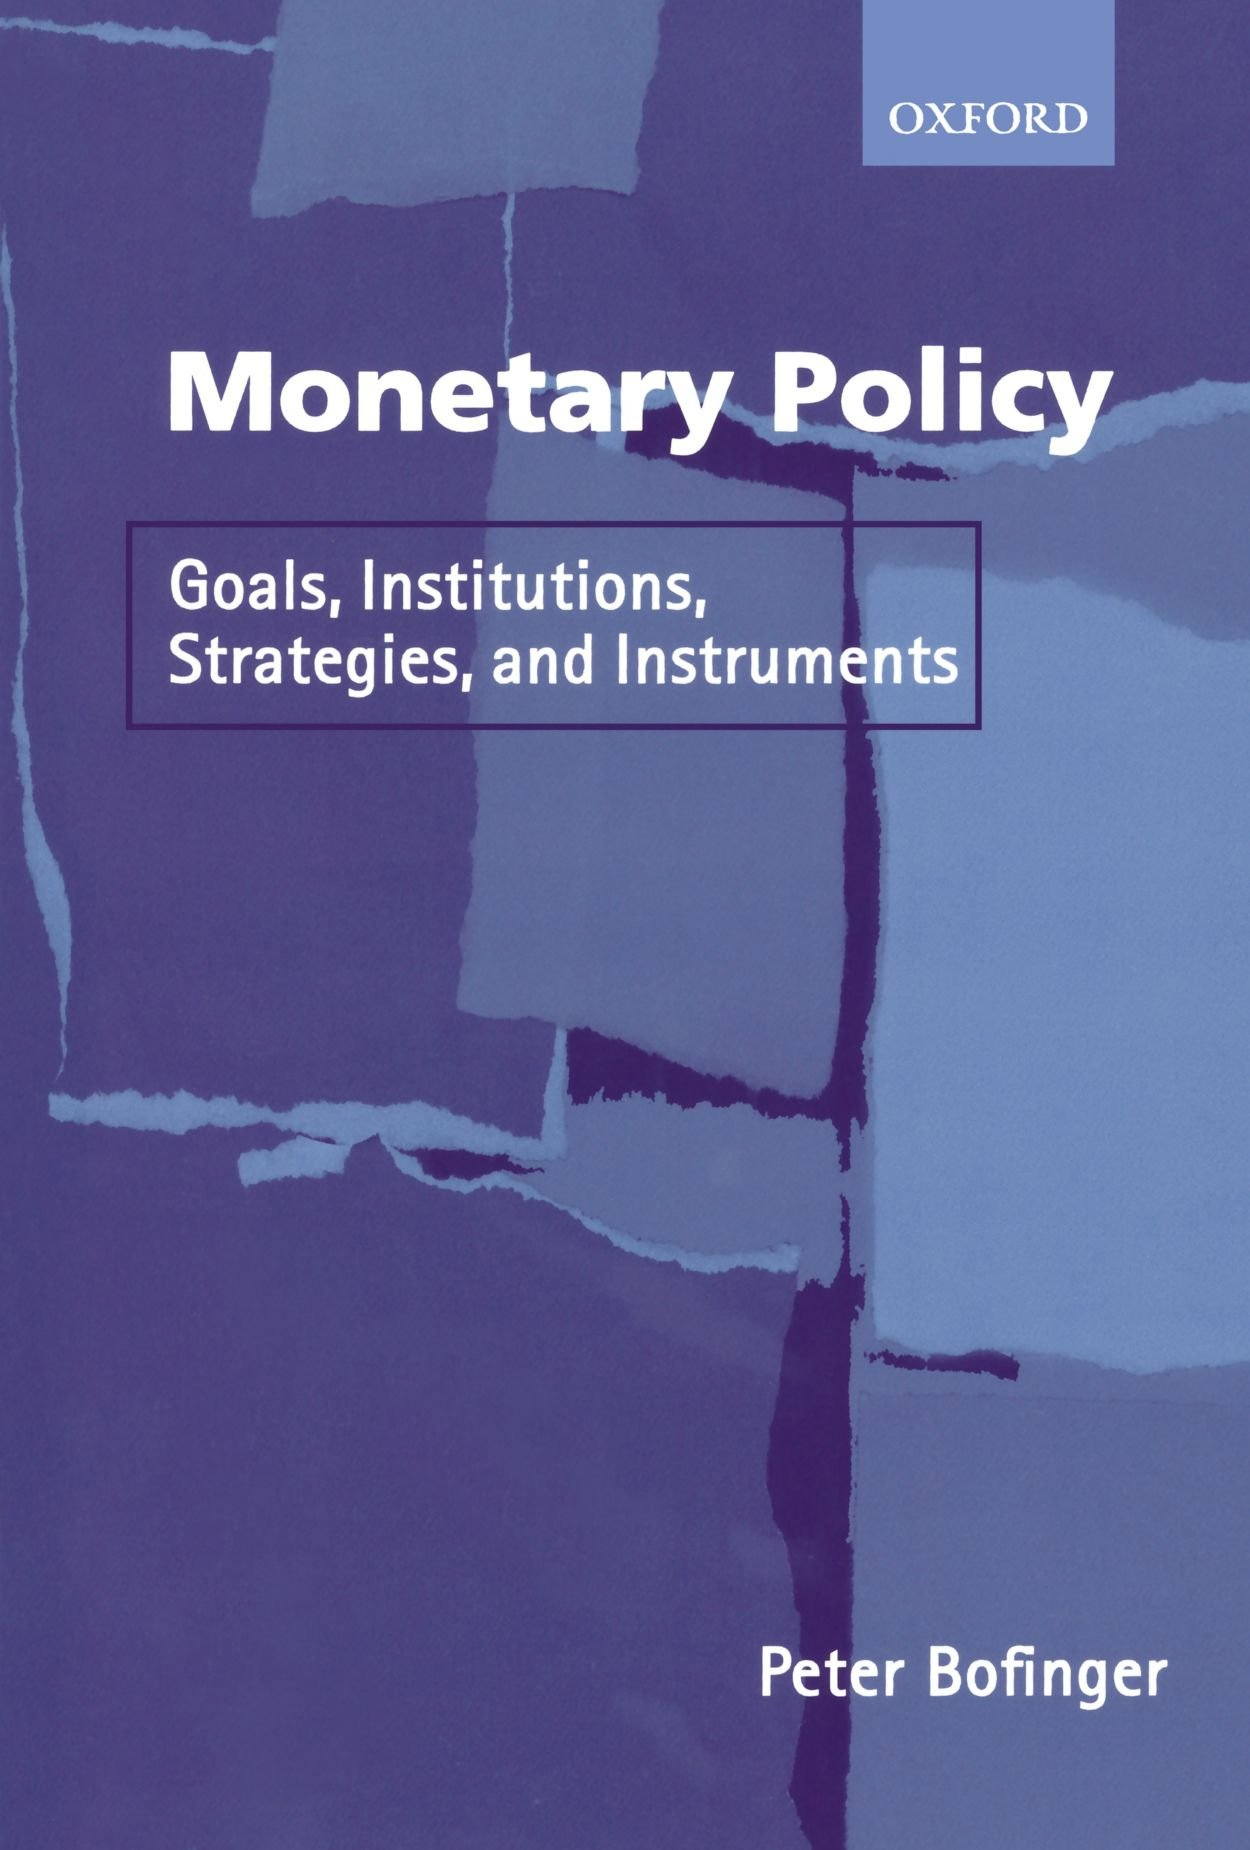 monetary policy goals institutions strategies and instruments monetary policy goals institutions strategies and instruments amazon co uk peter bofinger 9780199248568 books